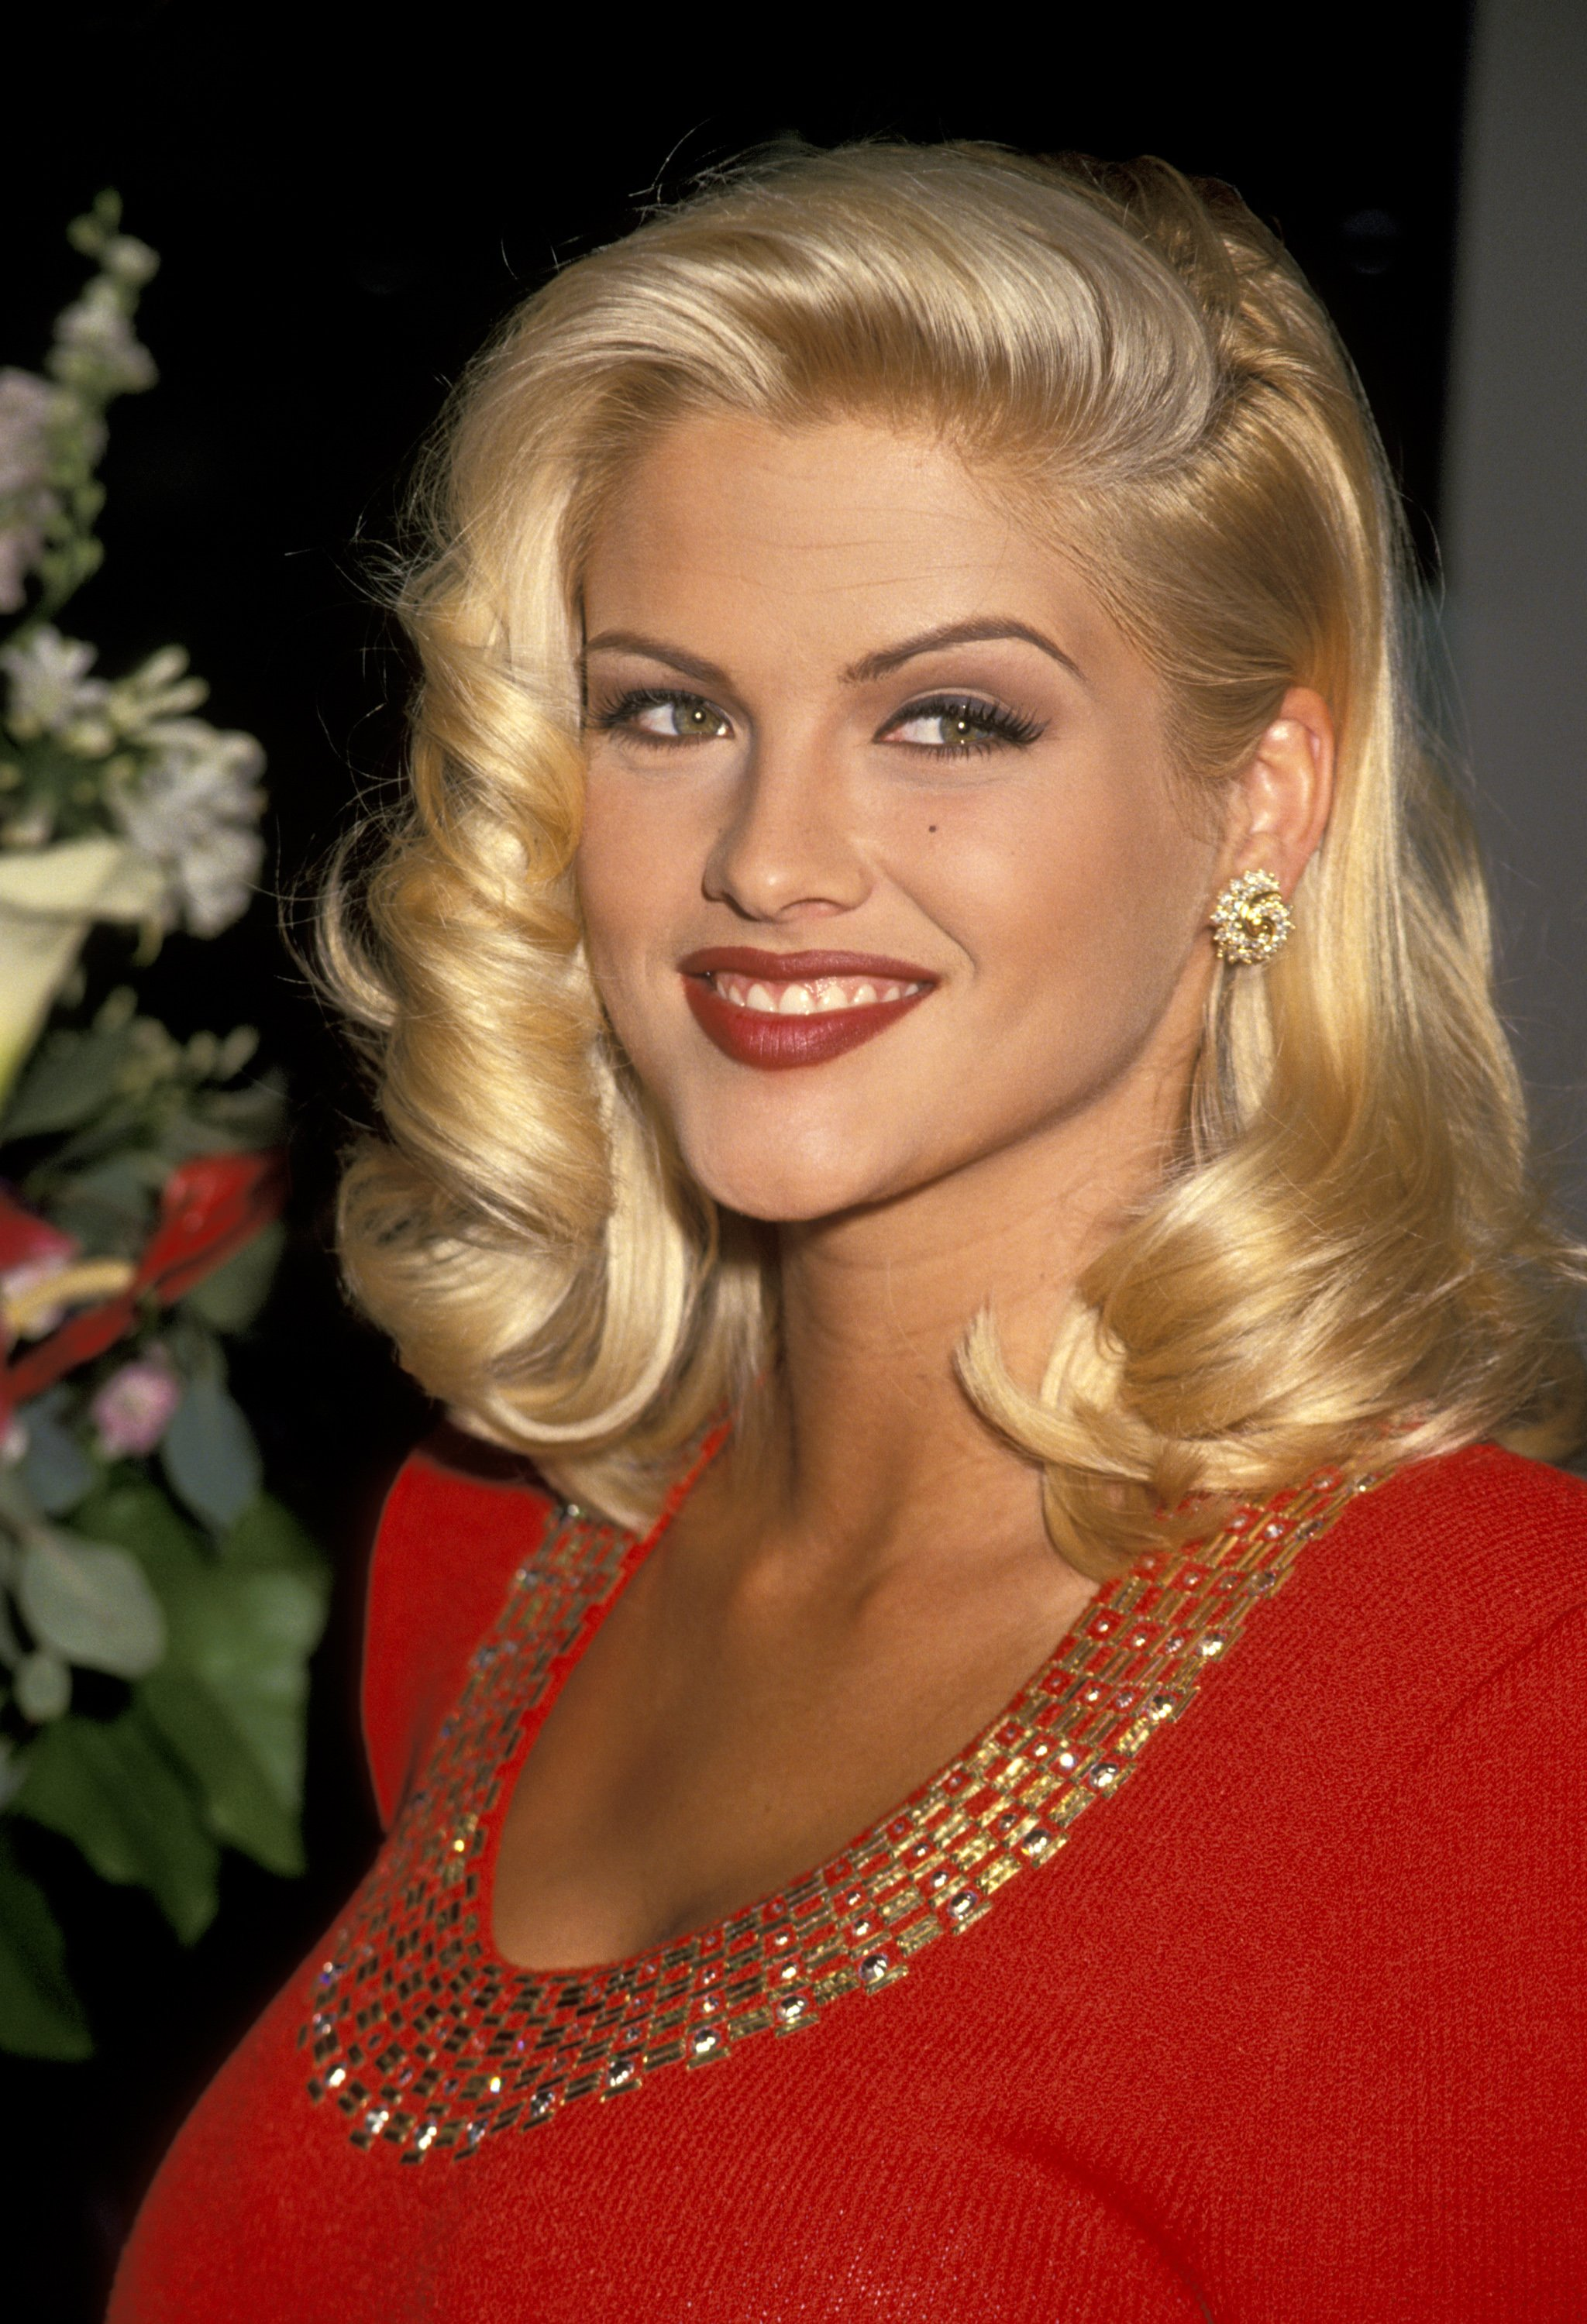 Anna Nicole Smith at the Video Software Dealers Association Convention in Las Vegas - July 11, 1993 | Photo: GettyImages